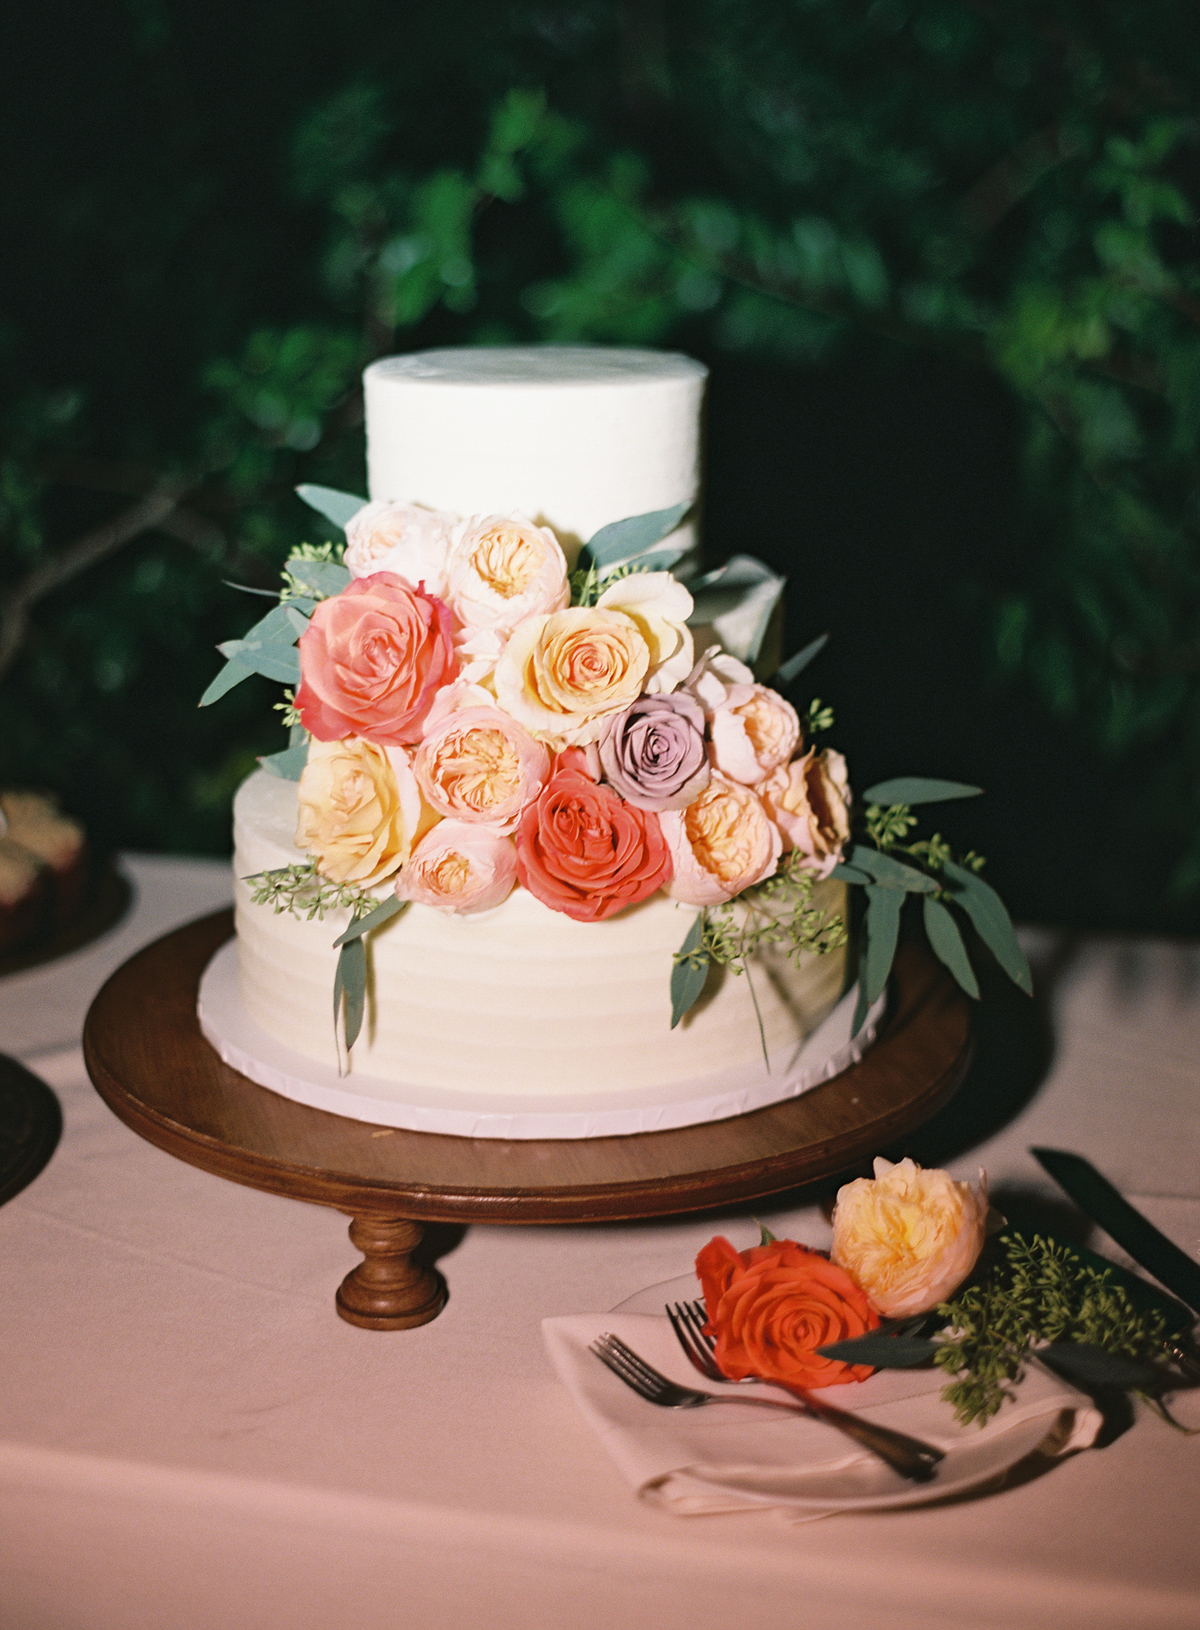 earl gray frosted wedding cake with floral accents